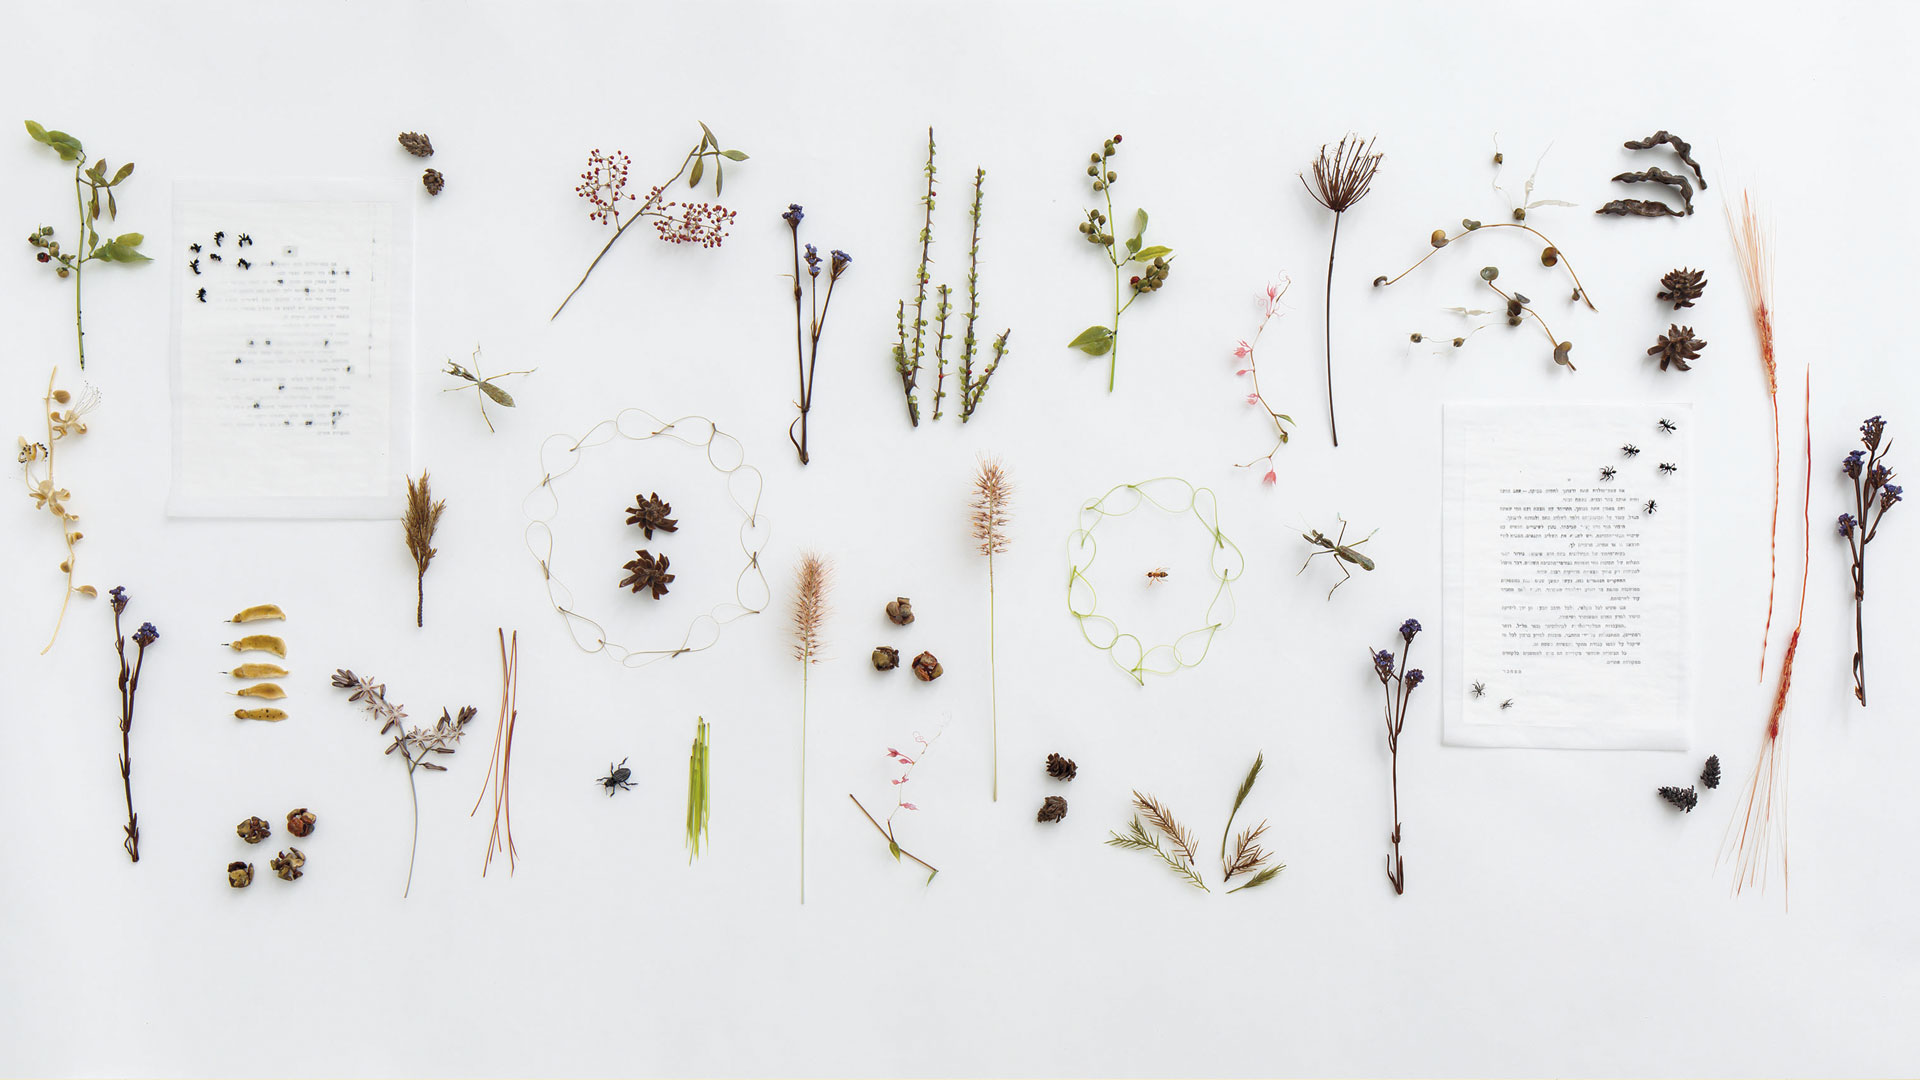 Wildflowers and Insects